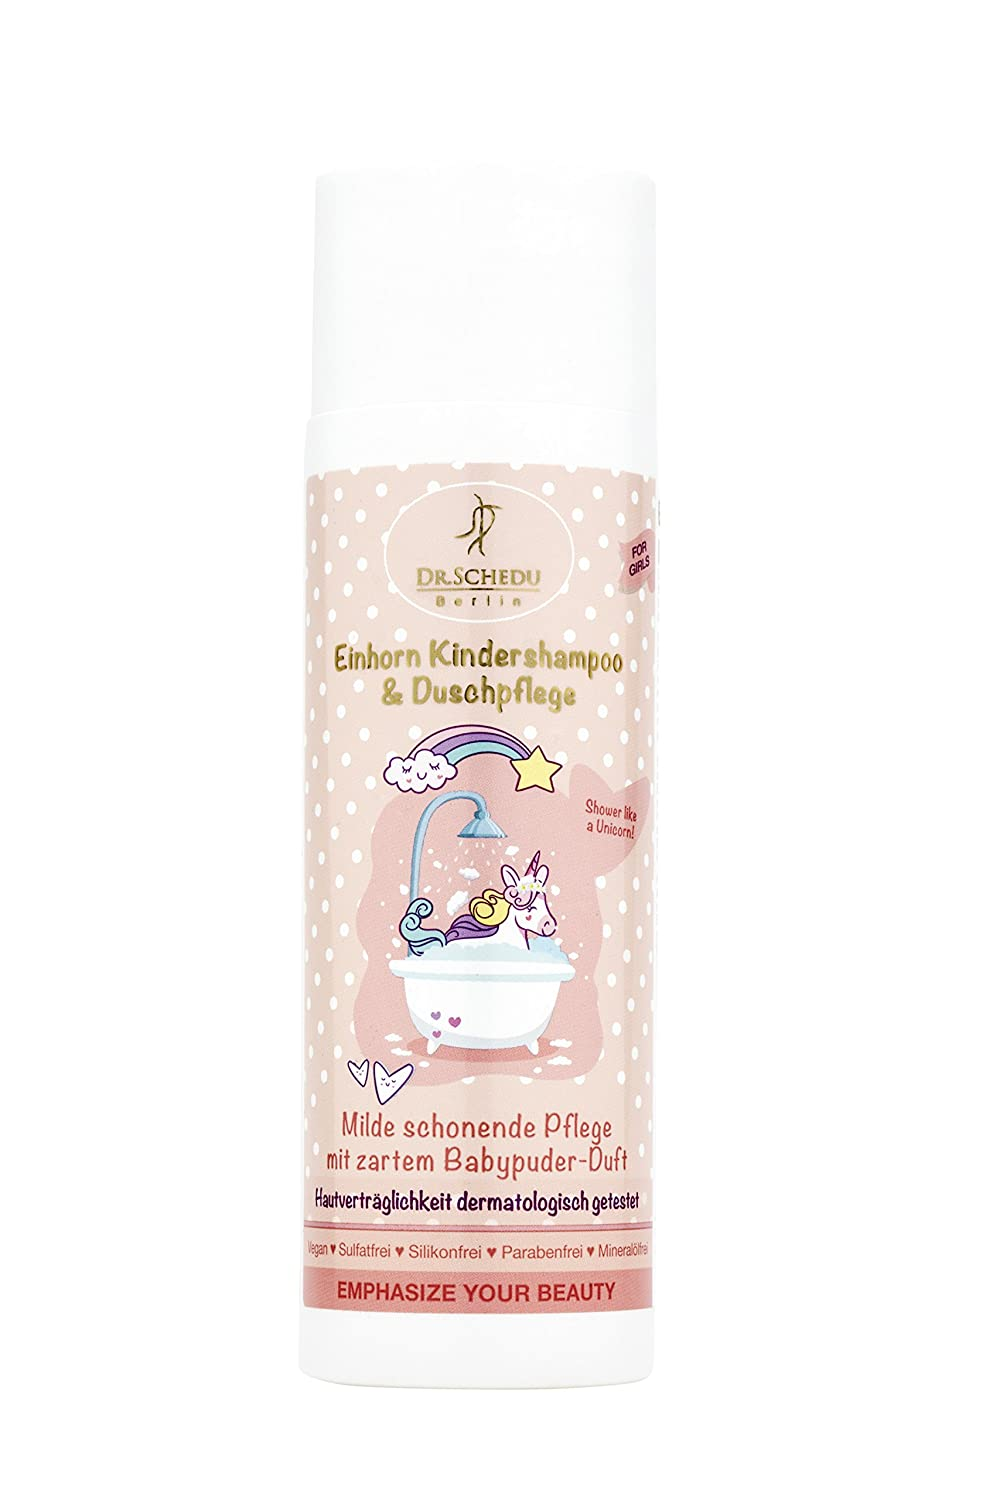 Dr. Schedu Berlin Unicorn Shampoo and Body Wash 200 ml. Vergan, Free of Silicone, Mineral Oils, parabens and colorings. with Broccoli Oil, Aloe Vera, Jojoba Oil and Pantheno